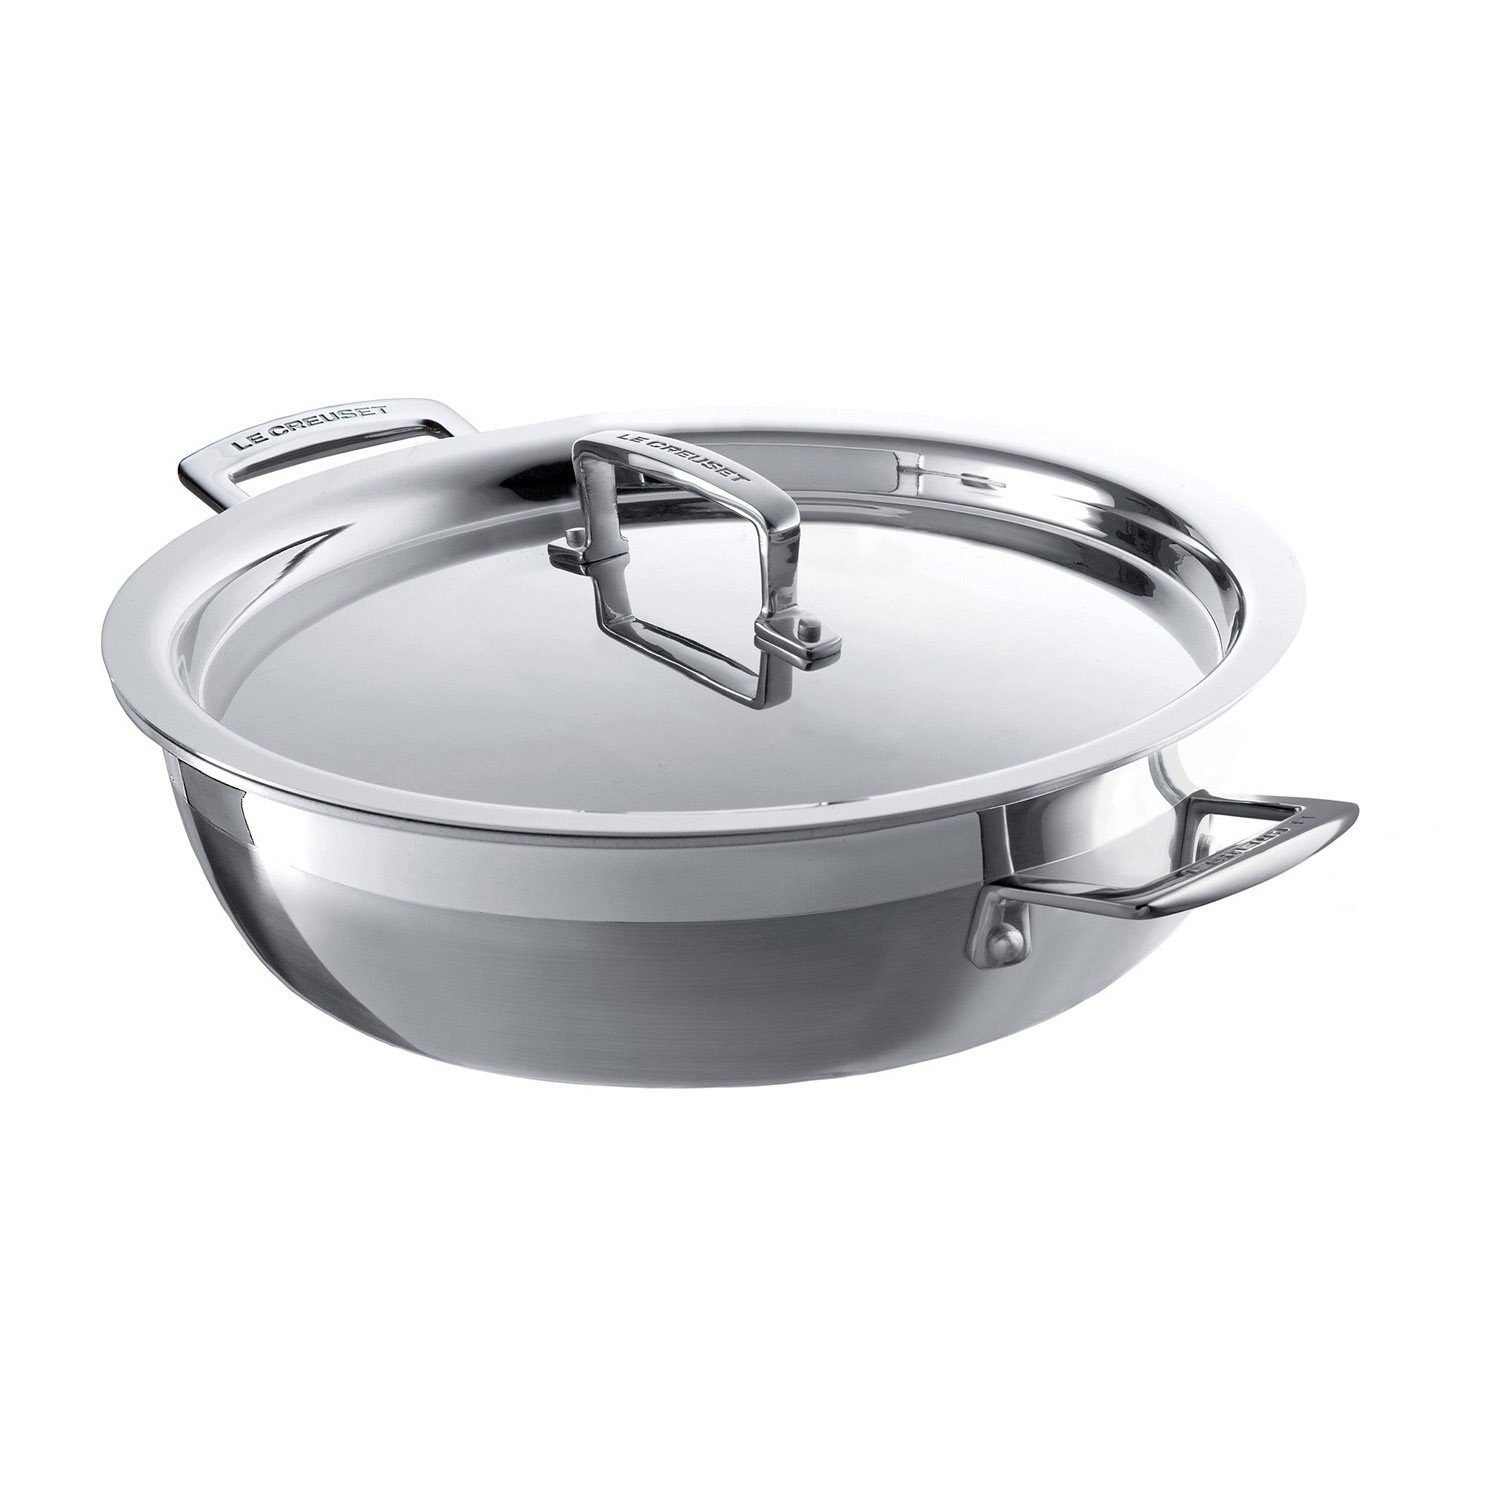 Image of Le Creuset 3-Ply Shallow Casserole with Lid, 26cm, Stainless Steel